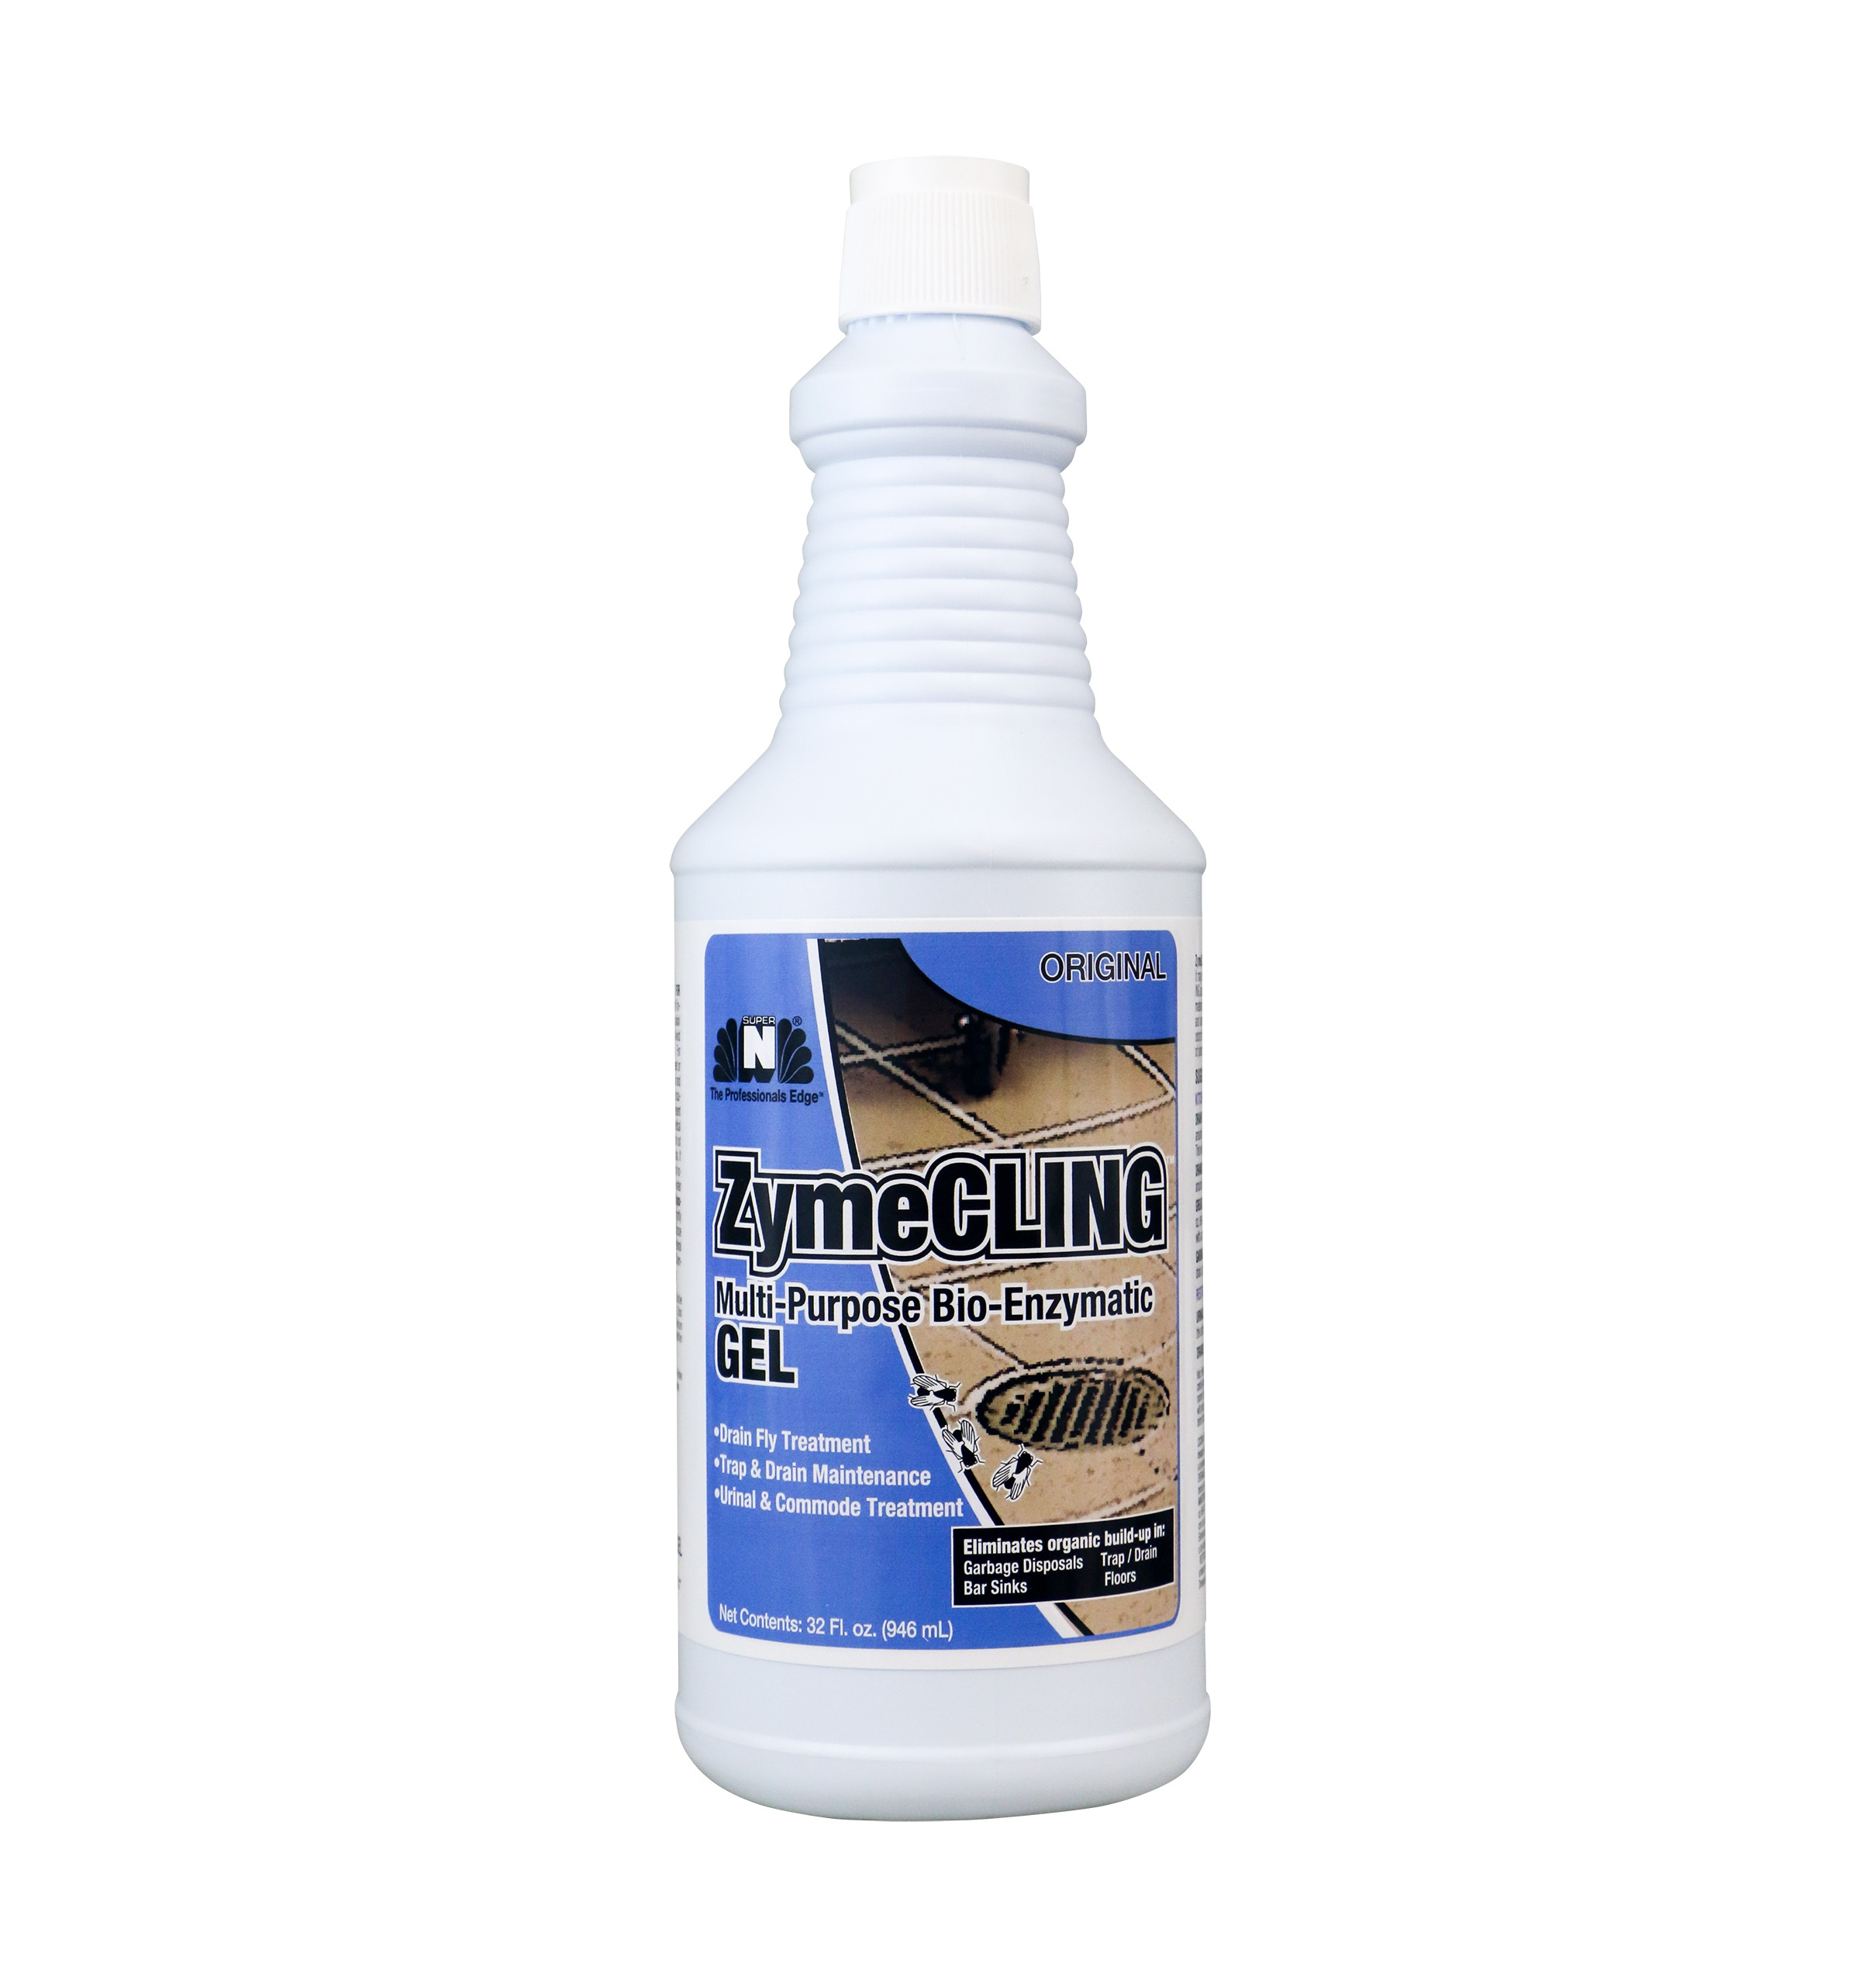 ZymeCLING Multi-Purpose Bio-Enzymatic Gel - 32oz, 6/Case